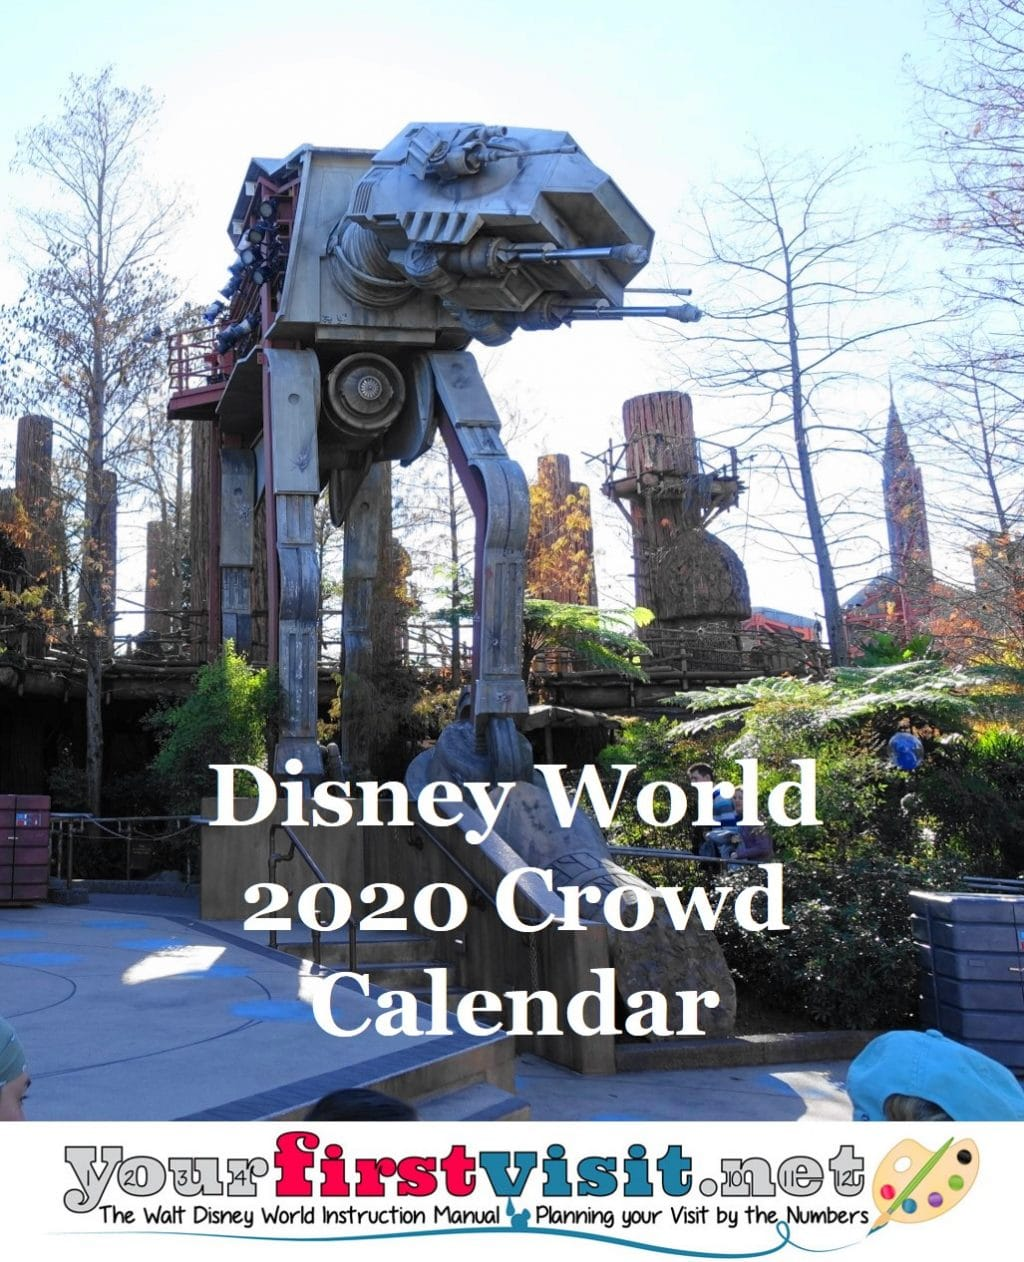 Disney Calendar 2020 Disney World Crowds in 2020   yourfirstvisit.net